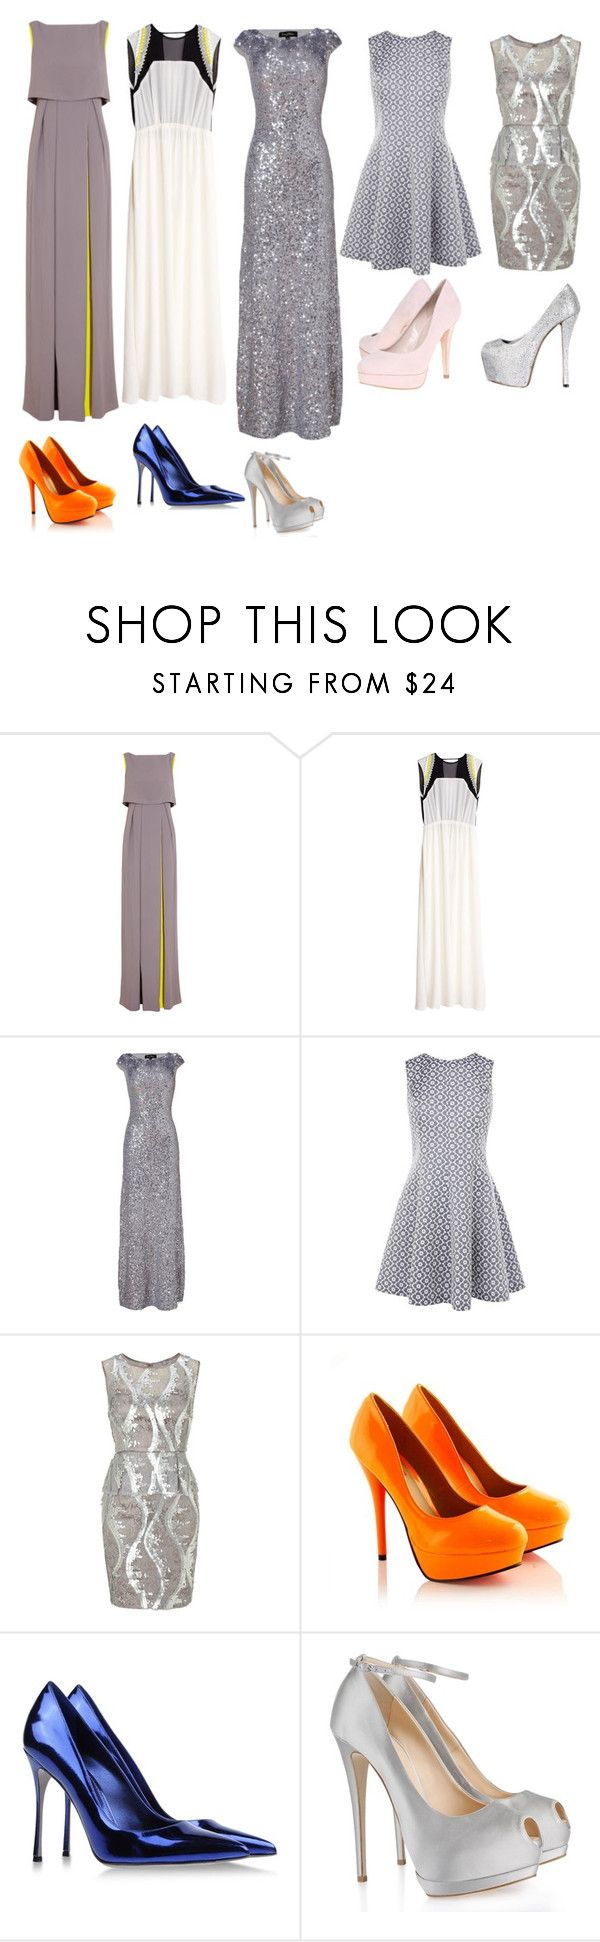 """""""Untitled #179"""" by dreamkm ❤ liked on Polyvore featuring Roksanda Ilincic, By Malene Birger, Jenny Packham, Oasis, Adrianna Papell, Sergio Rossi, Giuseppe Zanotti and Carvela"""